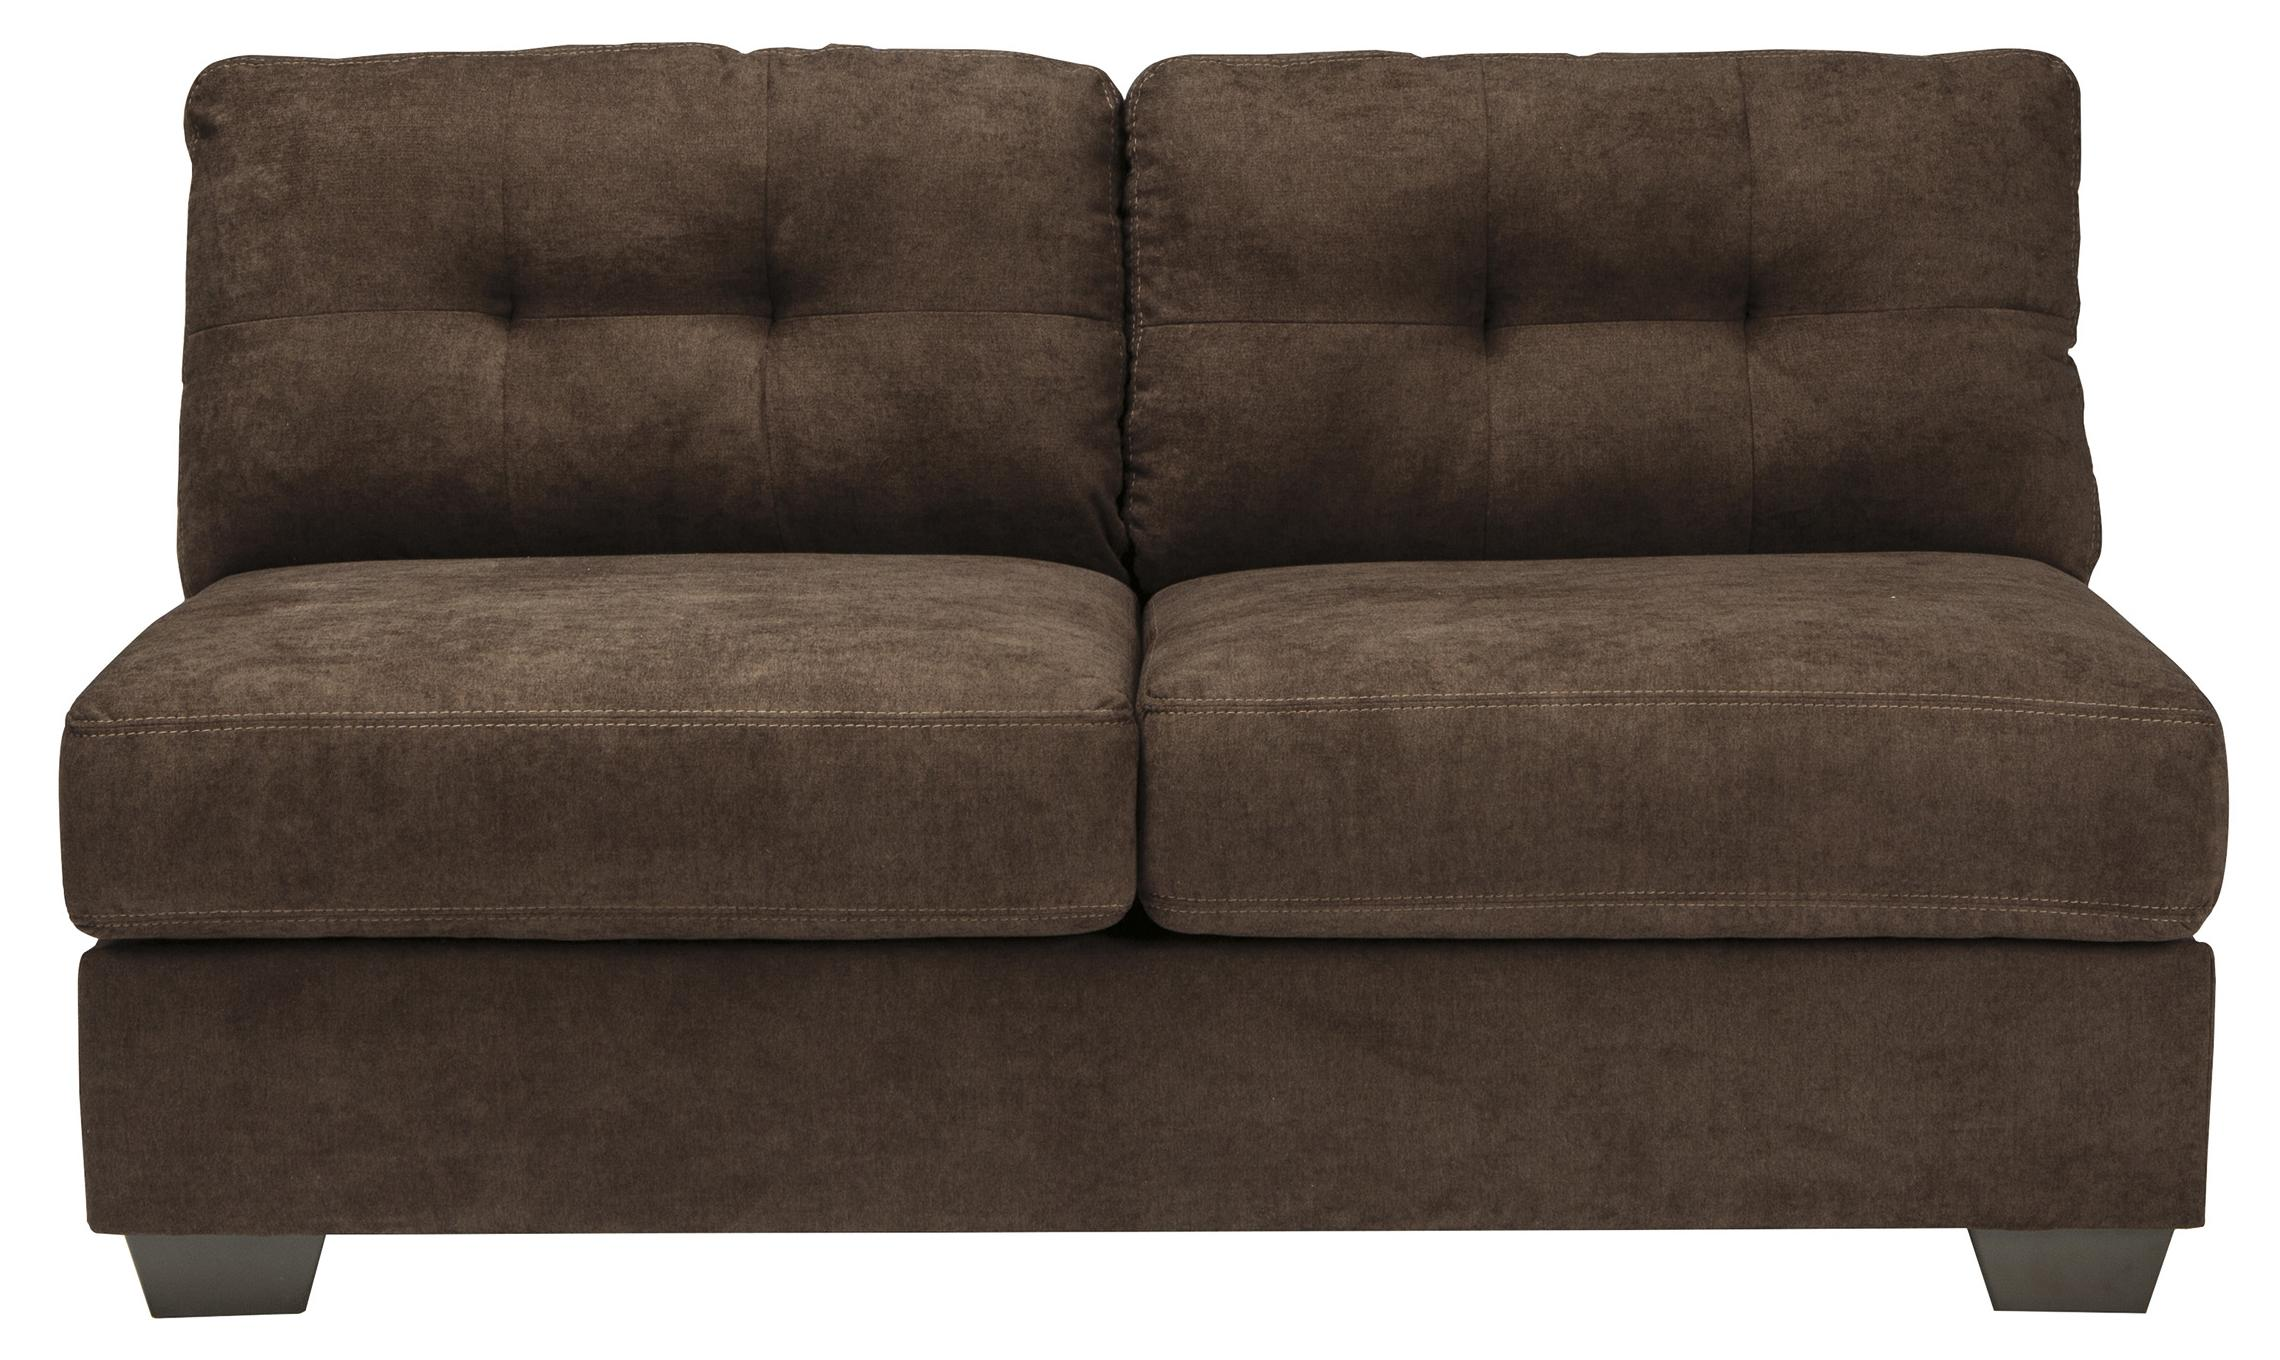 Ashley/Benchcraft Delta City - Chocolate Armless Loveseat - Item Number: 1970234